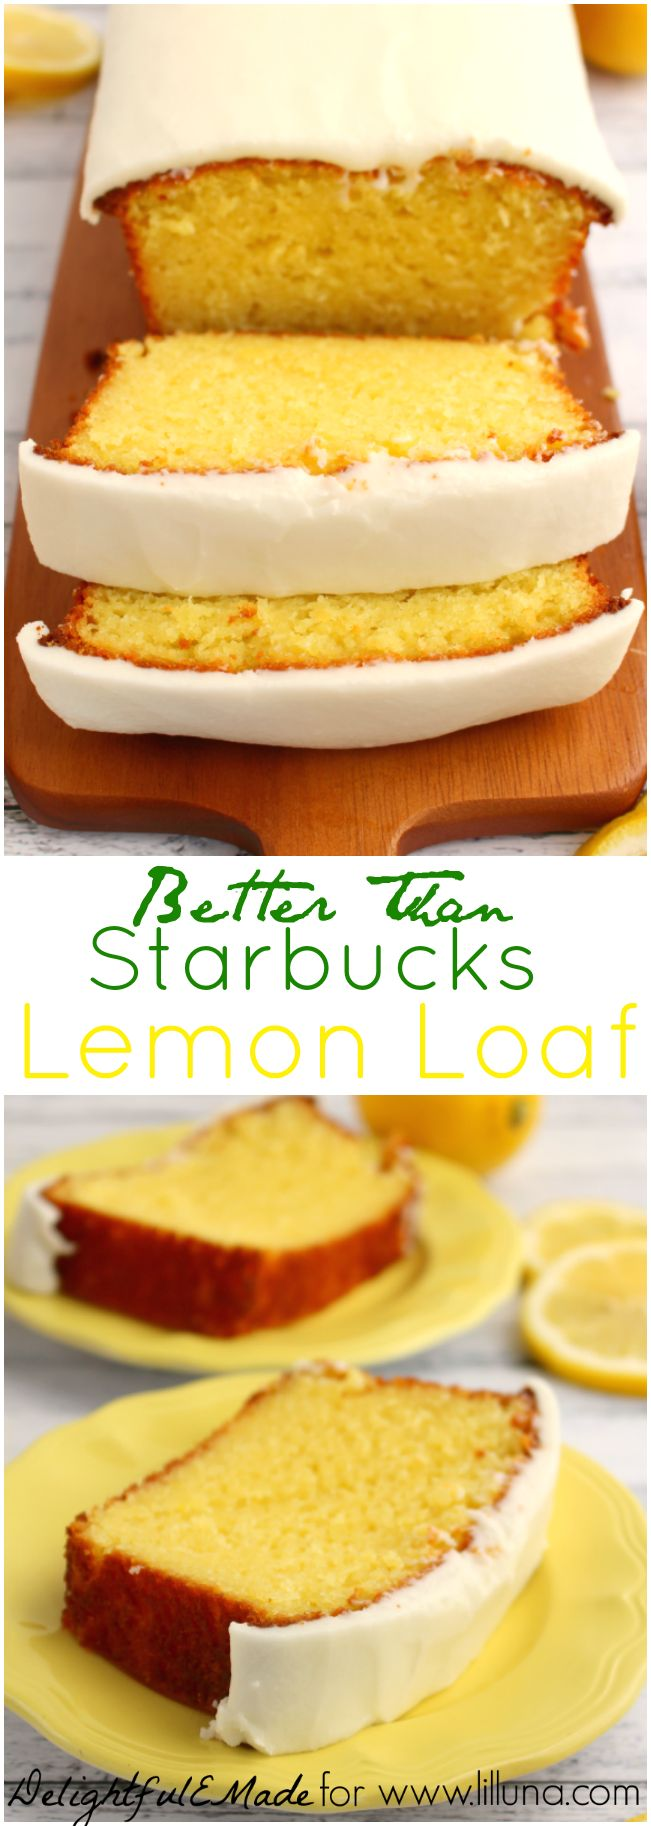 If you like Starbucks Lemon Loaf, then you'll love this moist, delicious Lemon cake! This easy to make recipe, is loaded with delicious lemon flavor, and topped with an amazing lemon frosting. L'il Luna